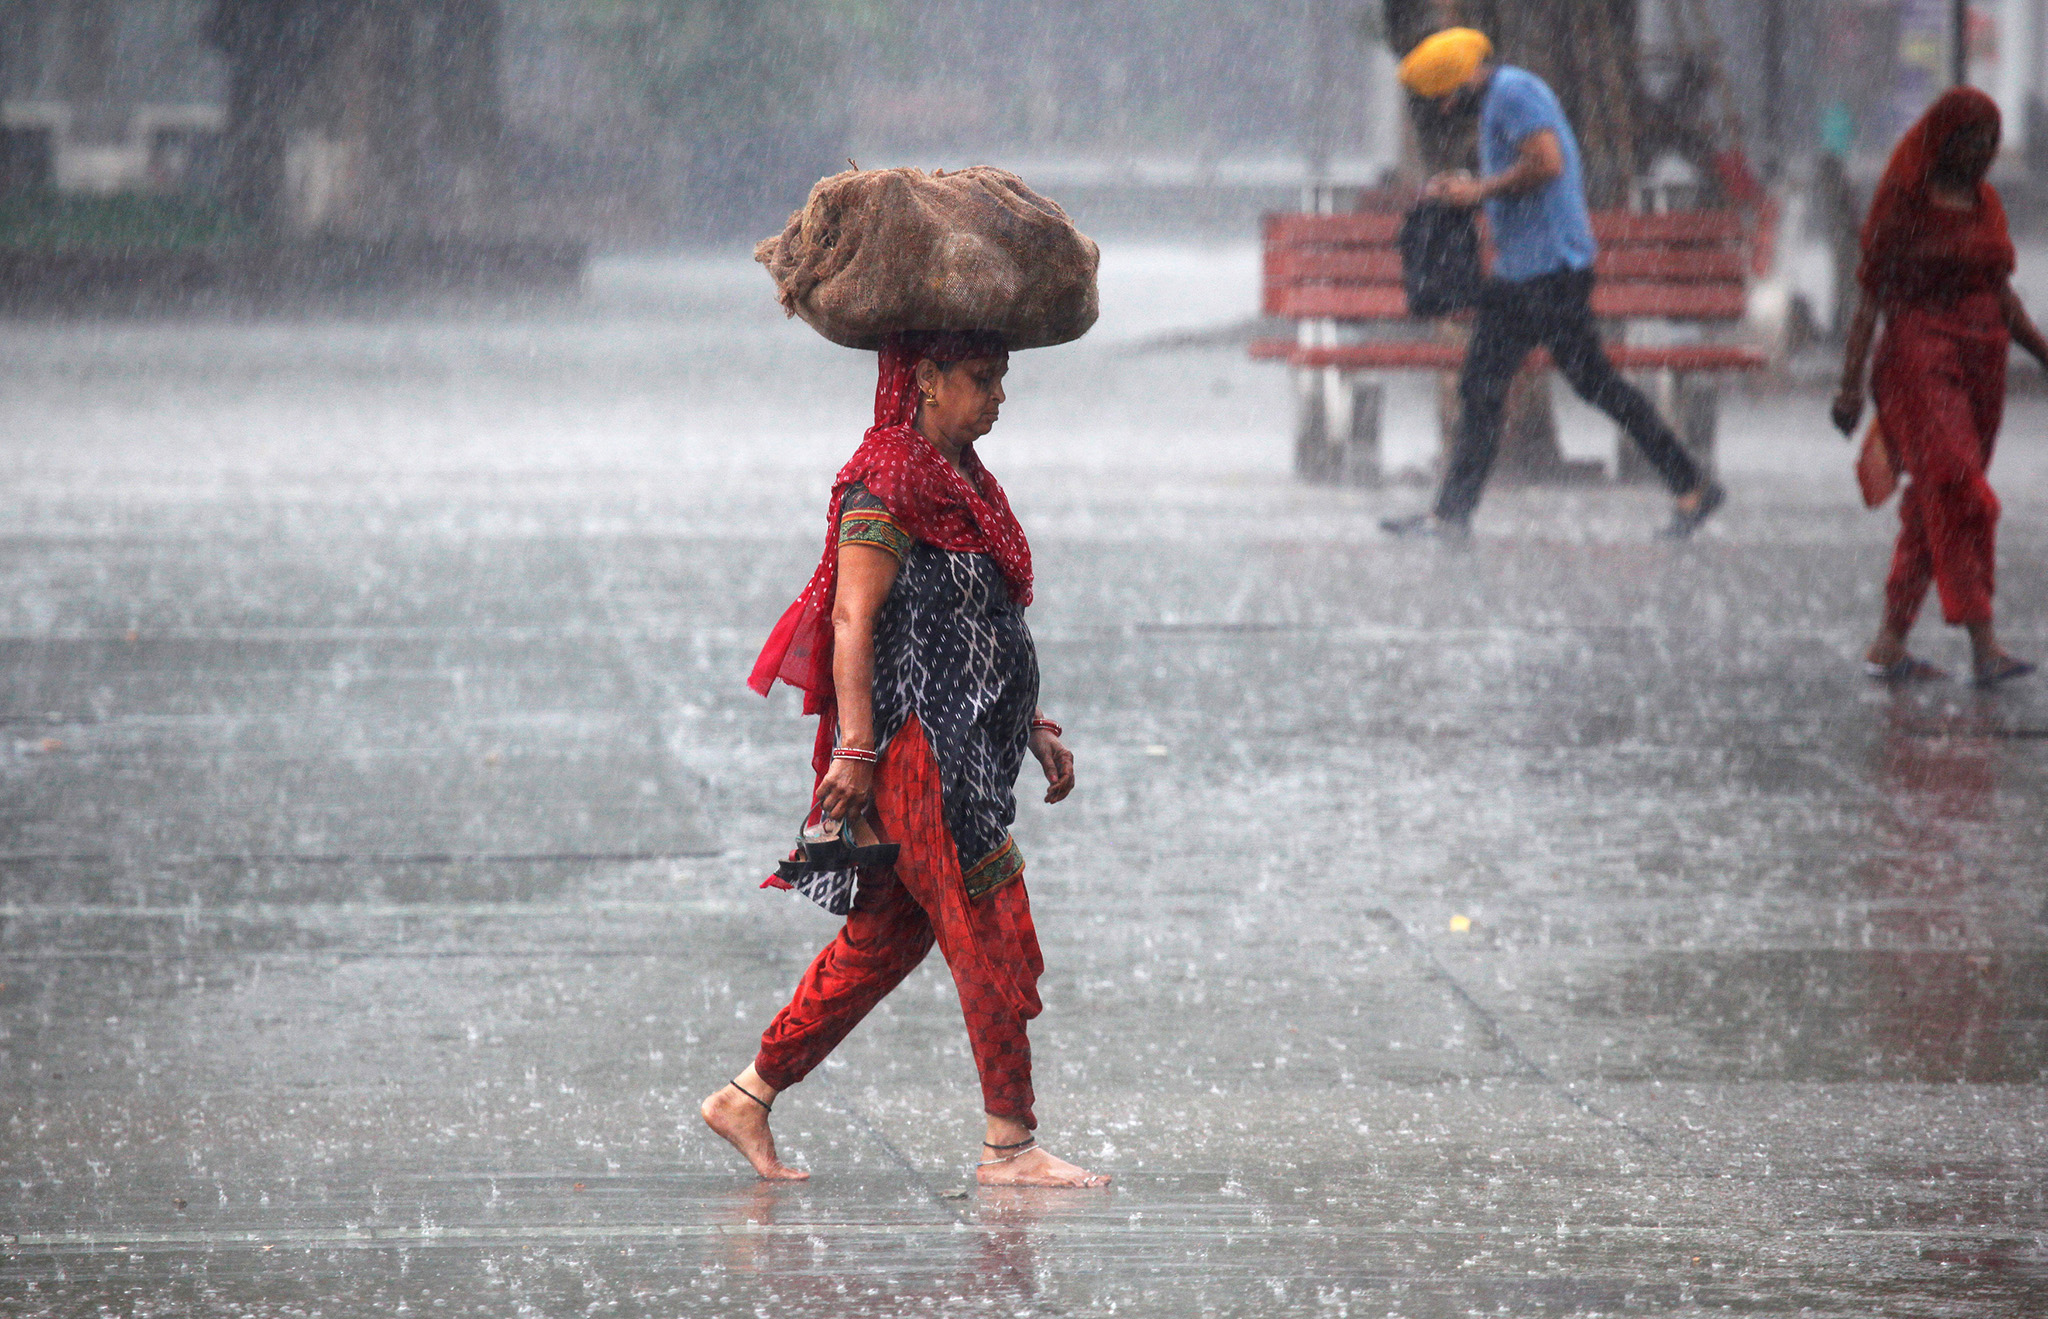 A woman carries a sack outside a market during heavy rains in Chandigarh, India,